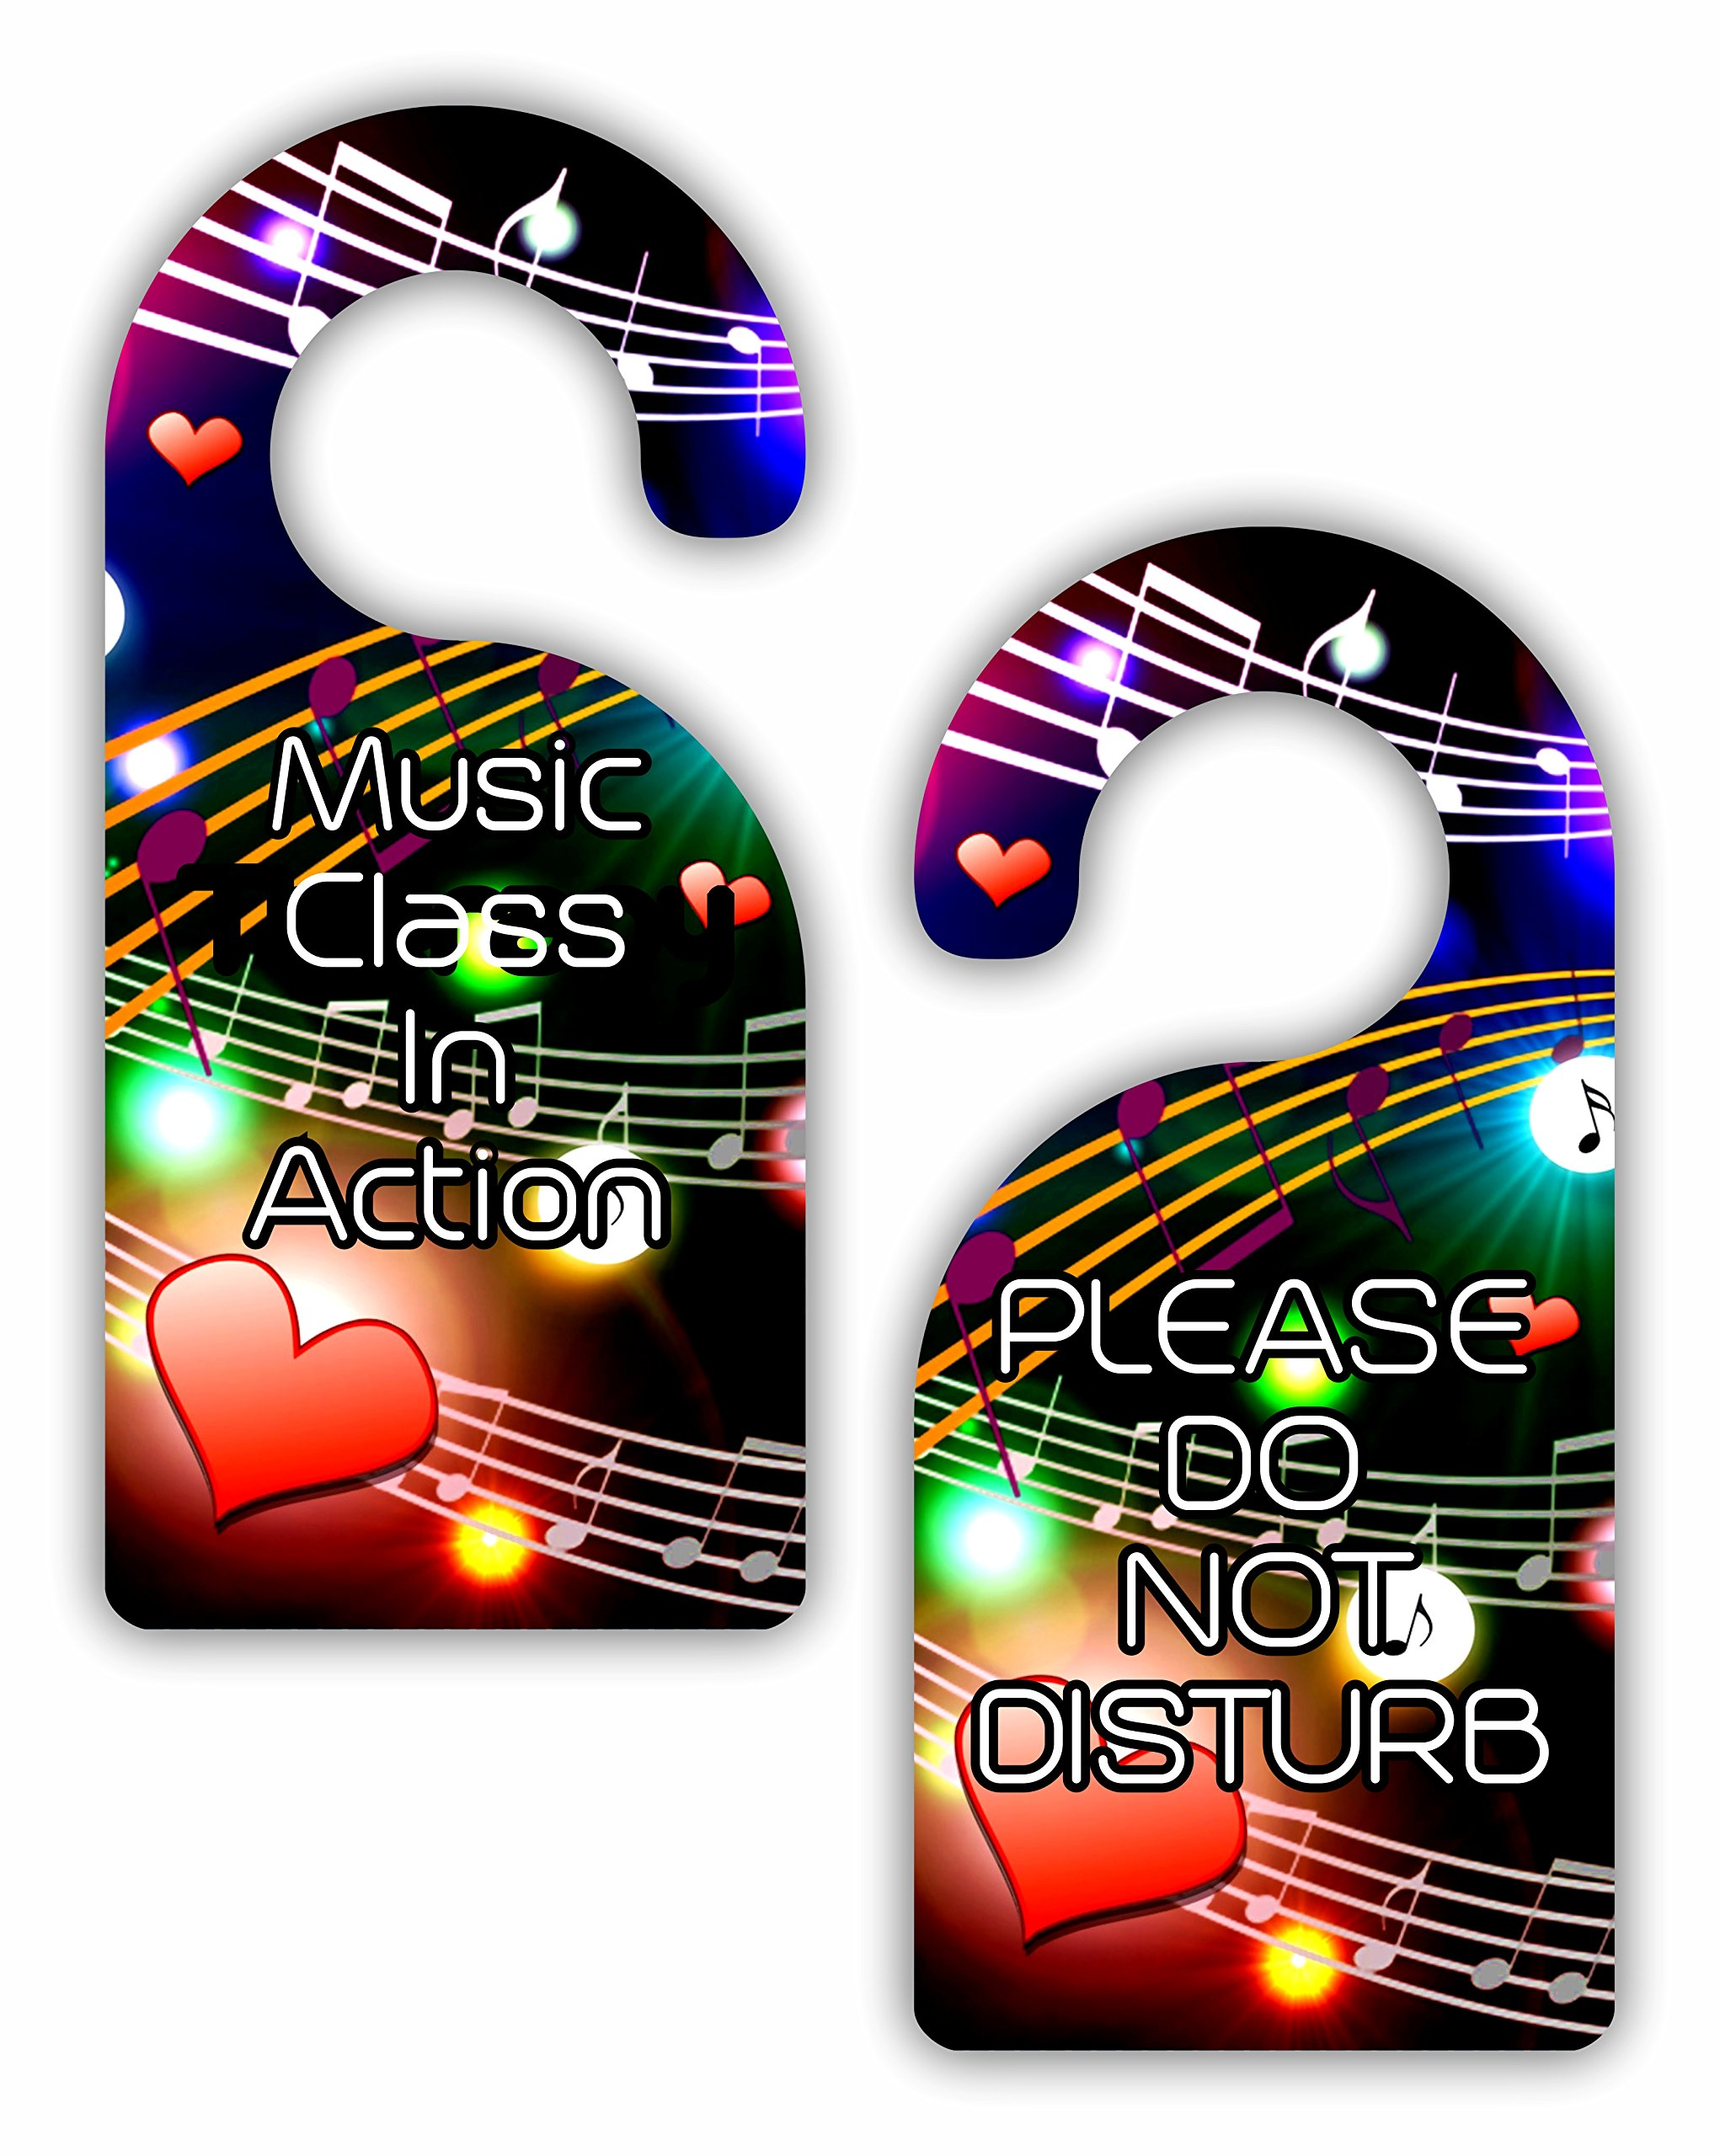 Music Class in Action/Please Do Not Disturb - Multicolored Musical Clefs and Notes - Double-Sided Hard Plastic Glossy Door Hanger